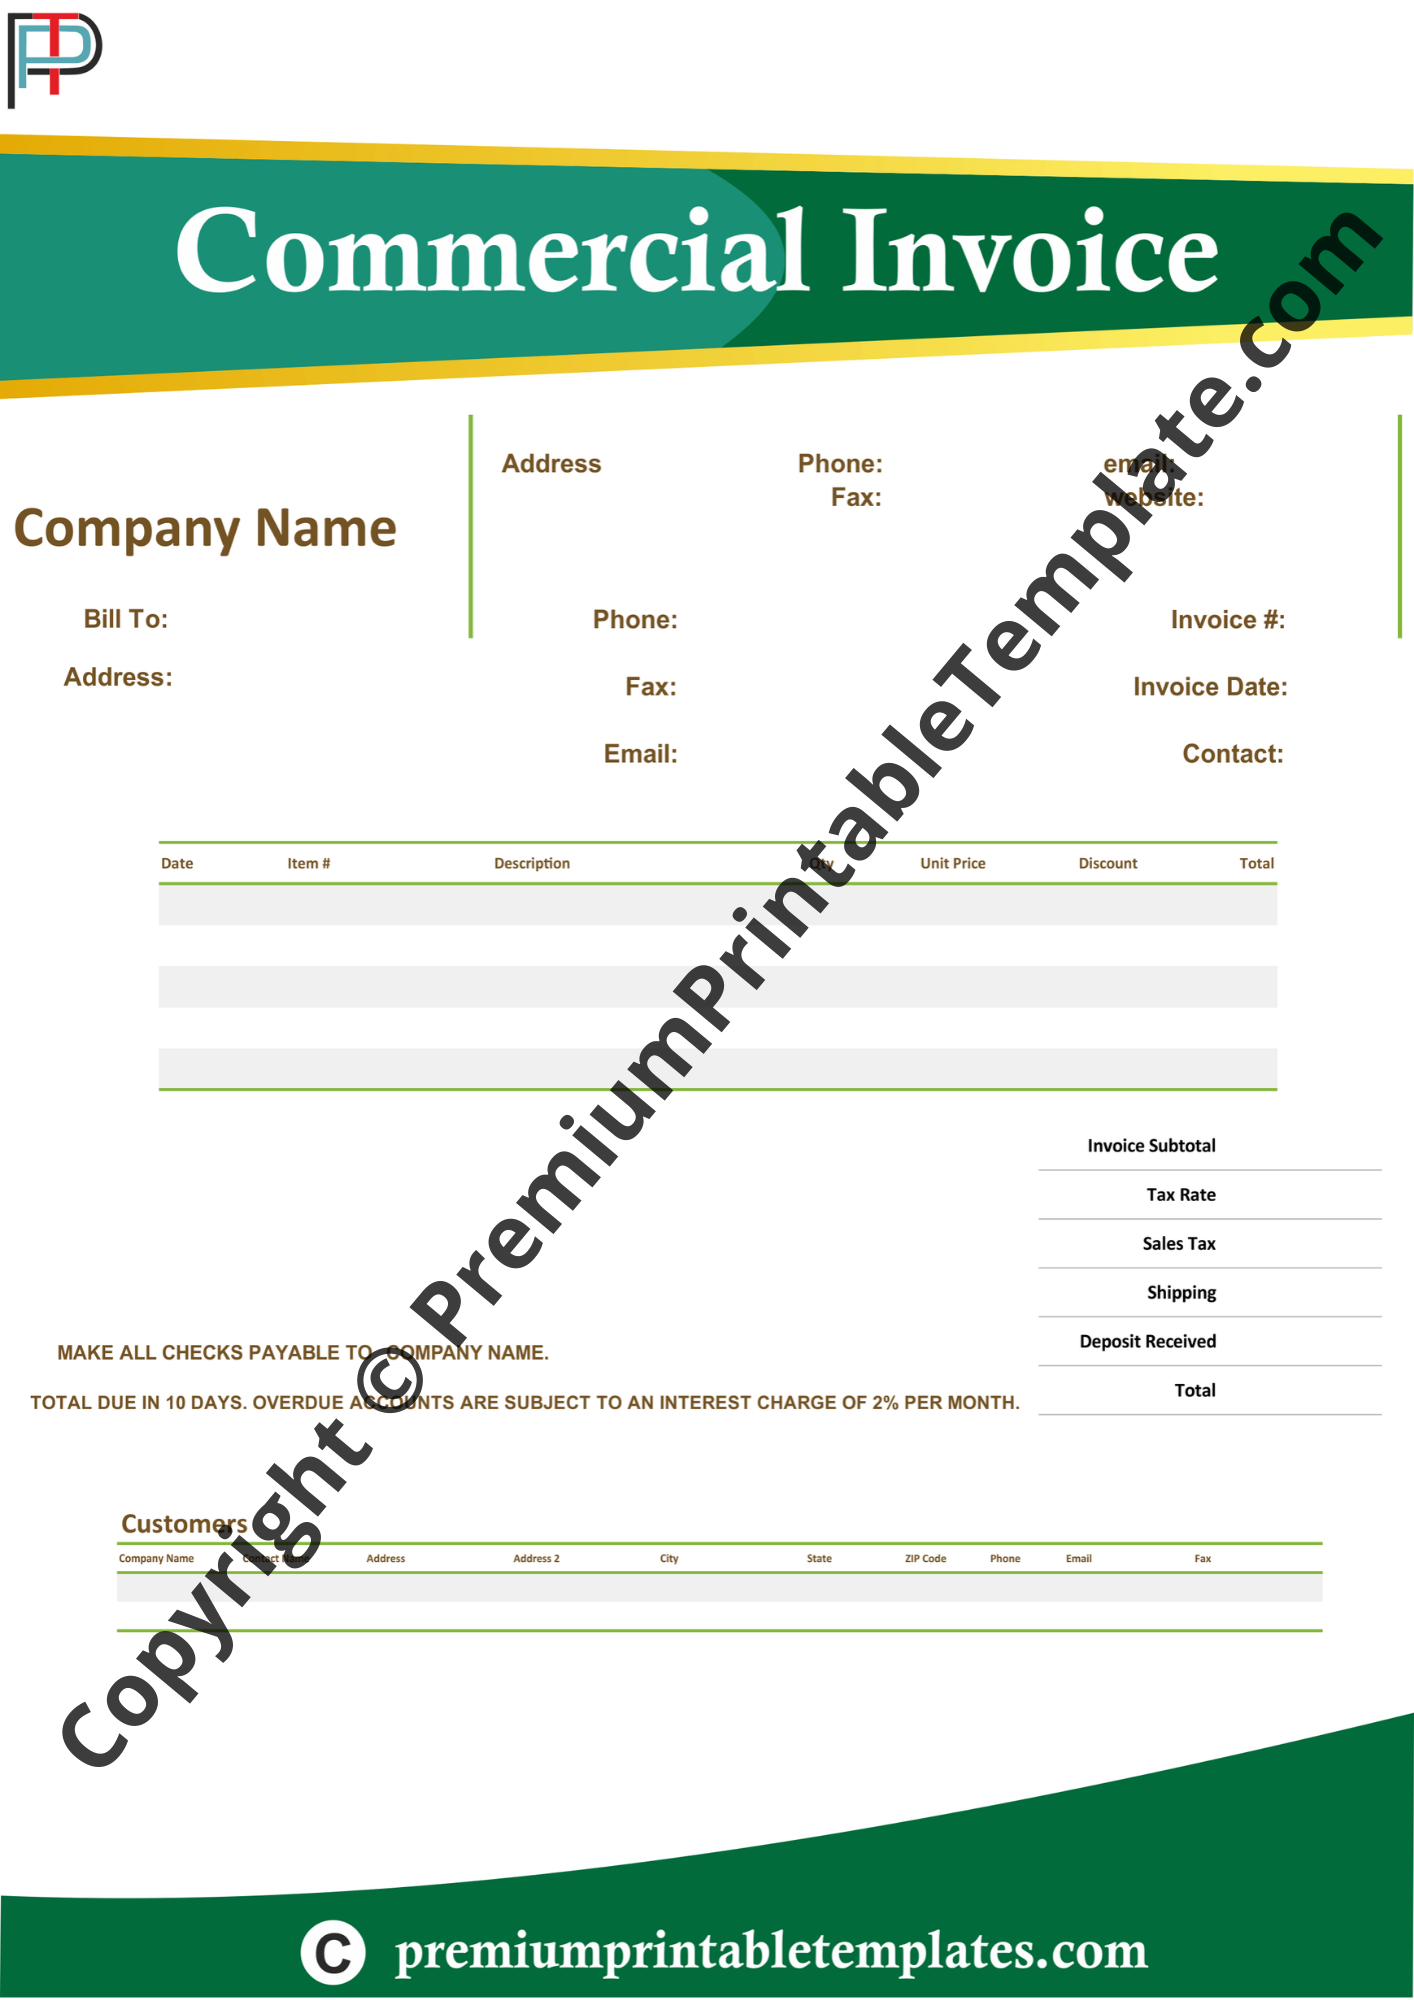 commercial invoice